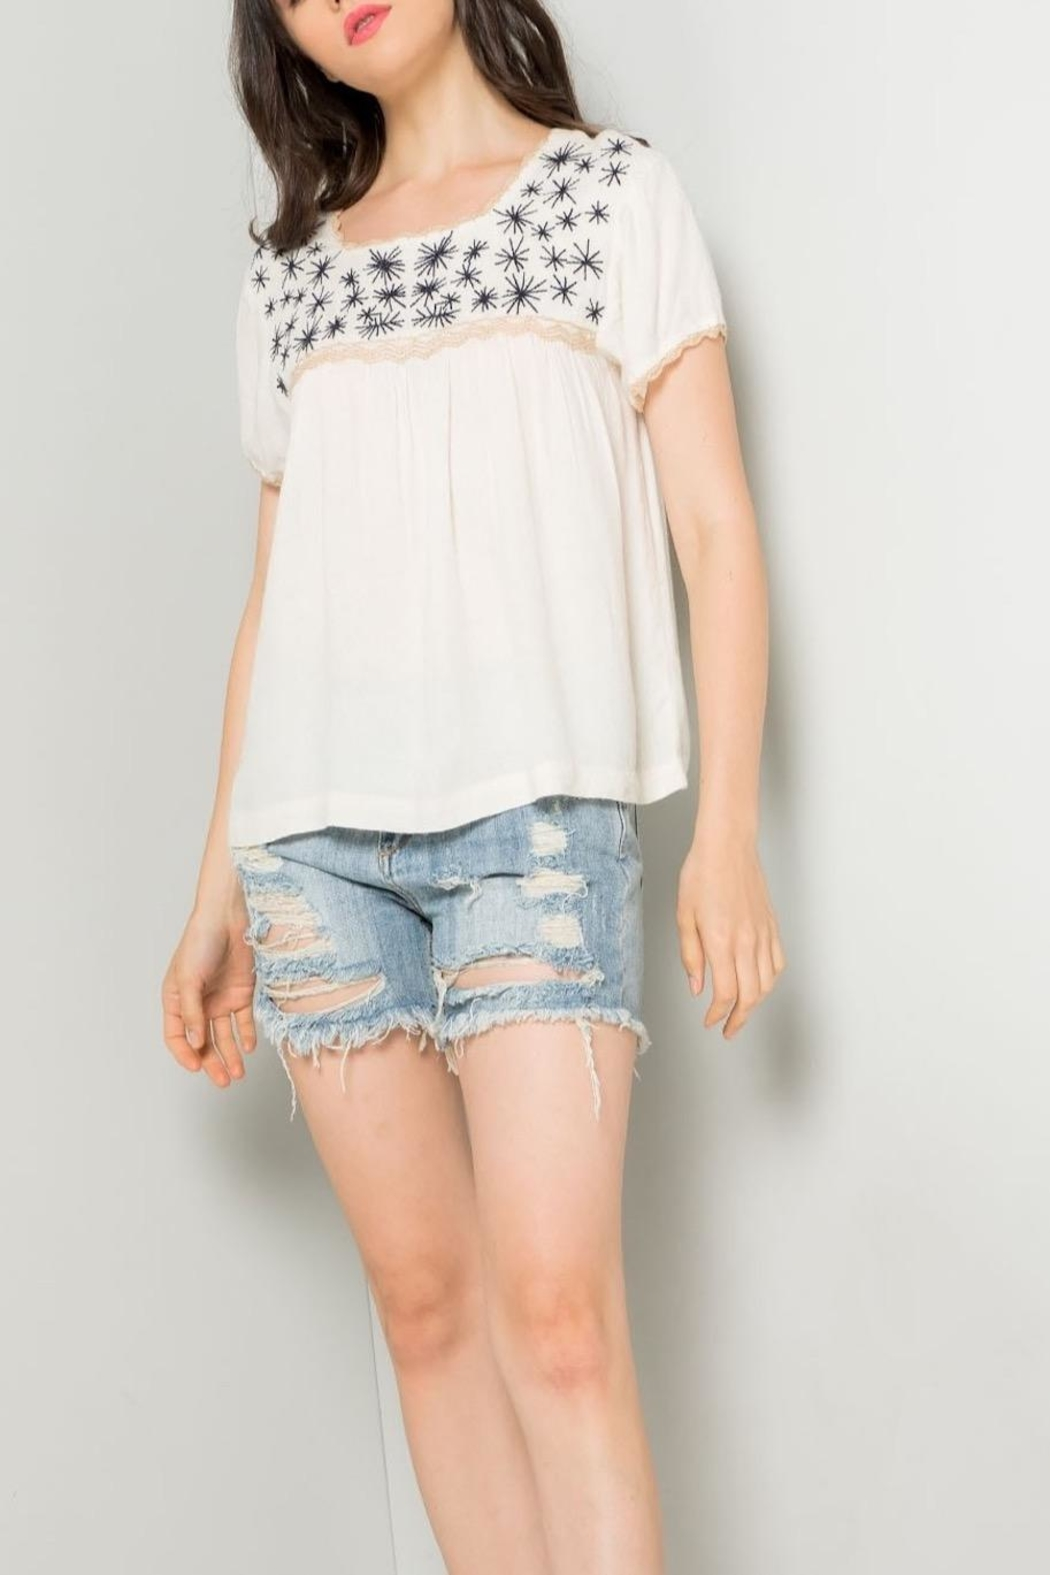 THML Clothing Cream Embroidered Top - Back Cropped Image